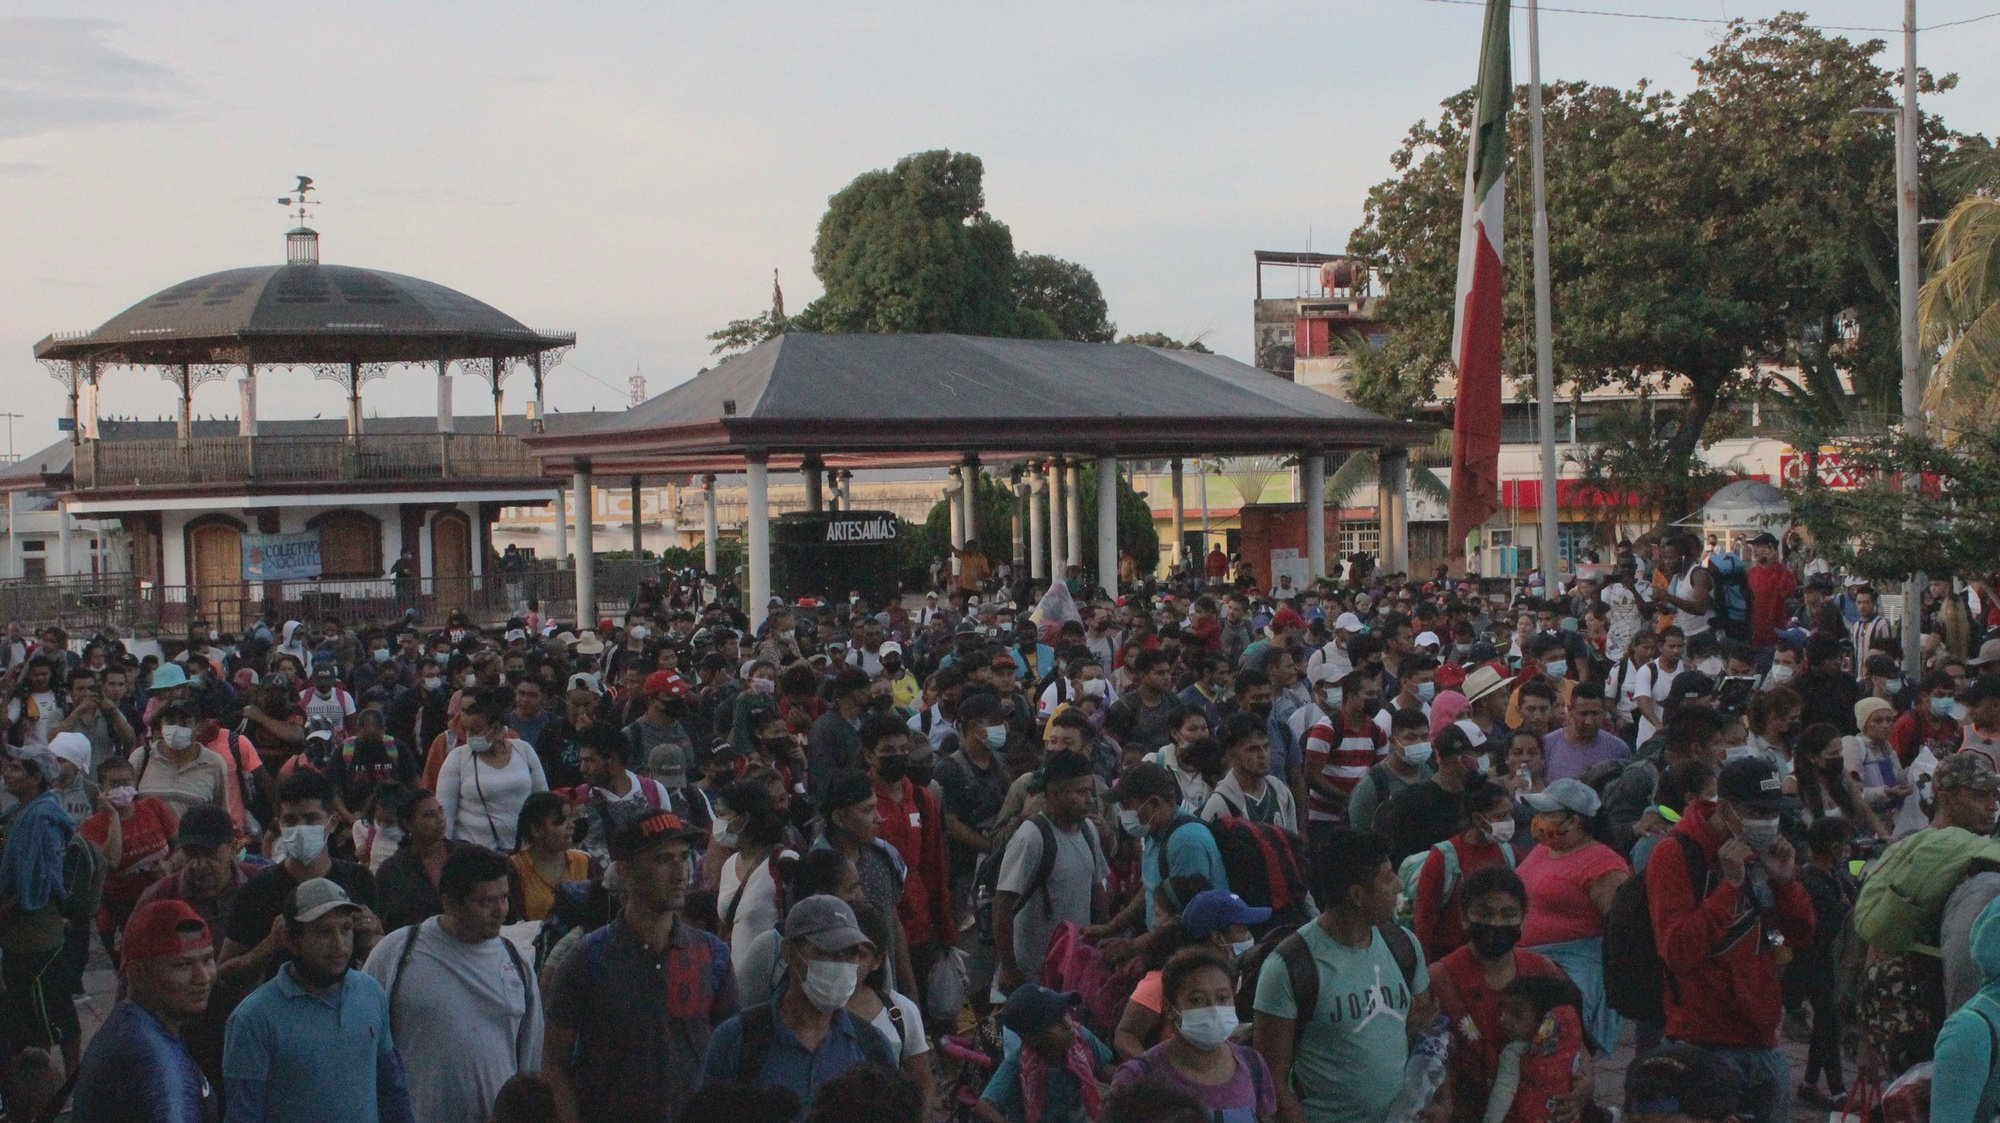 epa09541651 Migrants walk in a group in Tapachula, Chiapas state, Mexico, 23 October 2021. Almost 6000 migrant people coming mainly from Haiti, El Salvador, Honduras, and Guatemala took the road in a group early 23 October from Tapachula, south of Mexico near Guatemala, intending to reach Mexico City, in the center of the country.  EPA/Juan Manuel Blanco